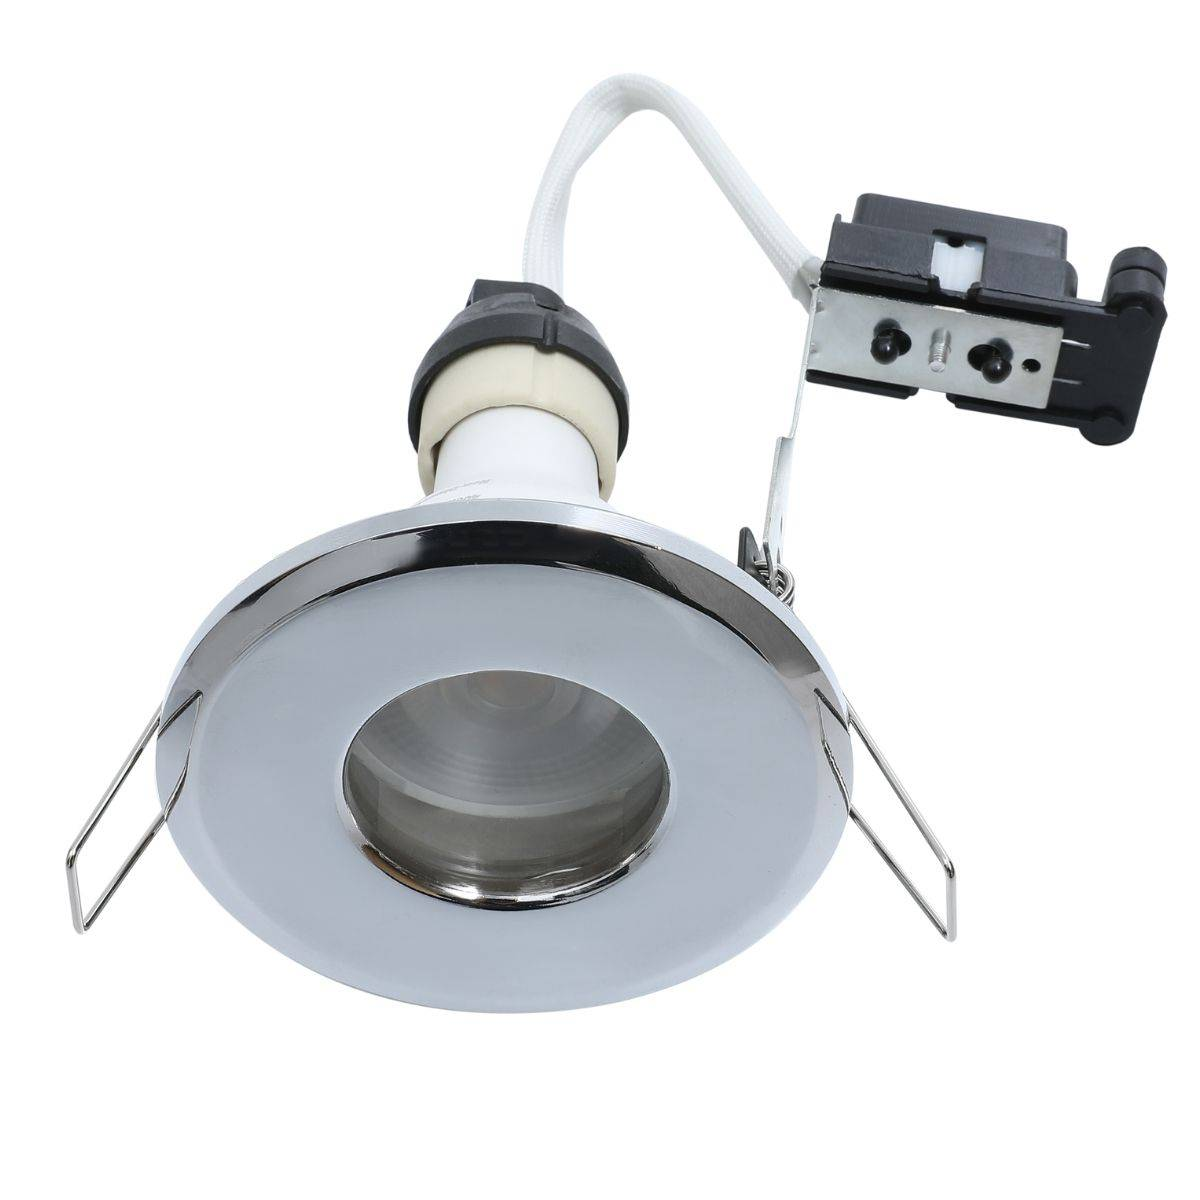 Simple Lighting IP65 Rated, Fixed, Shower Downlight - Polished Chrome Finish